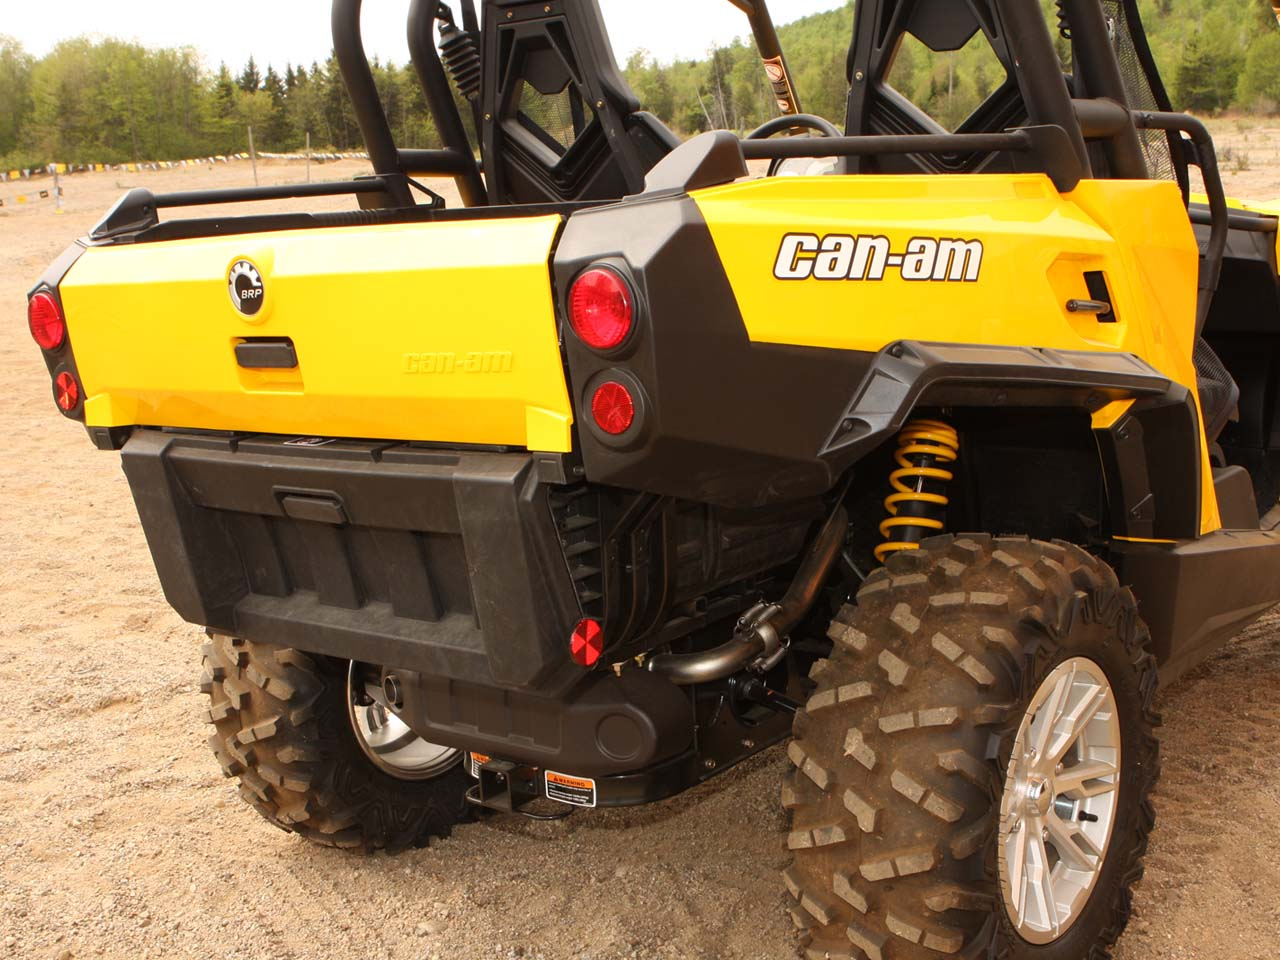 can-am commander 1000 problems